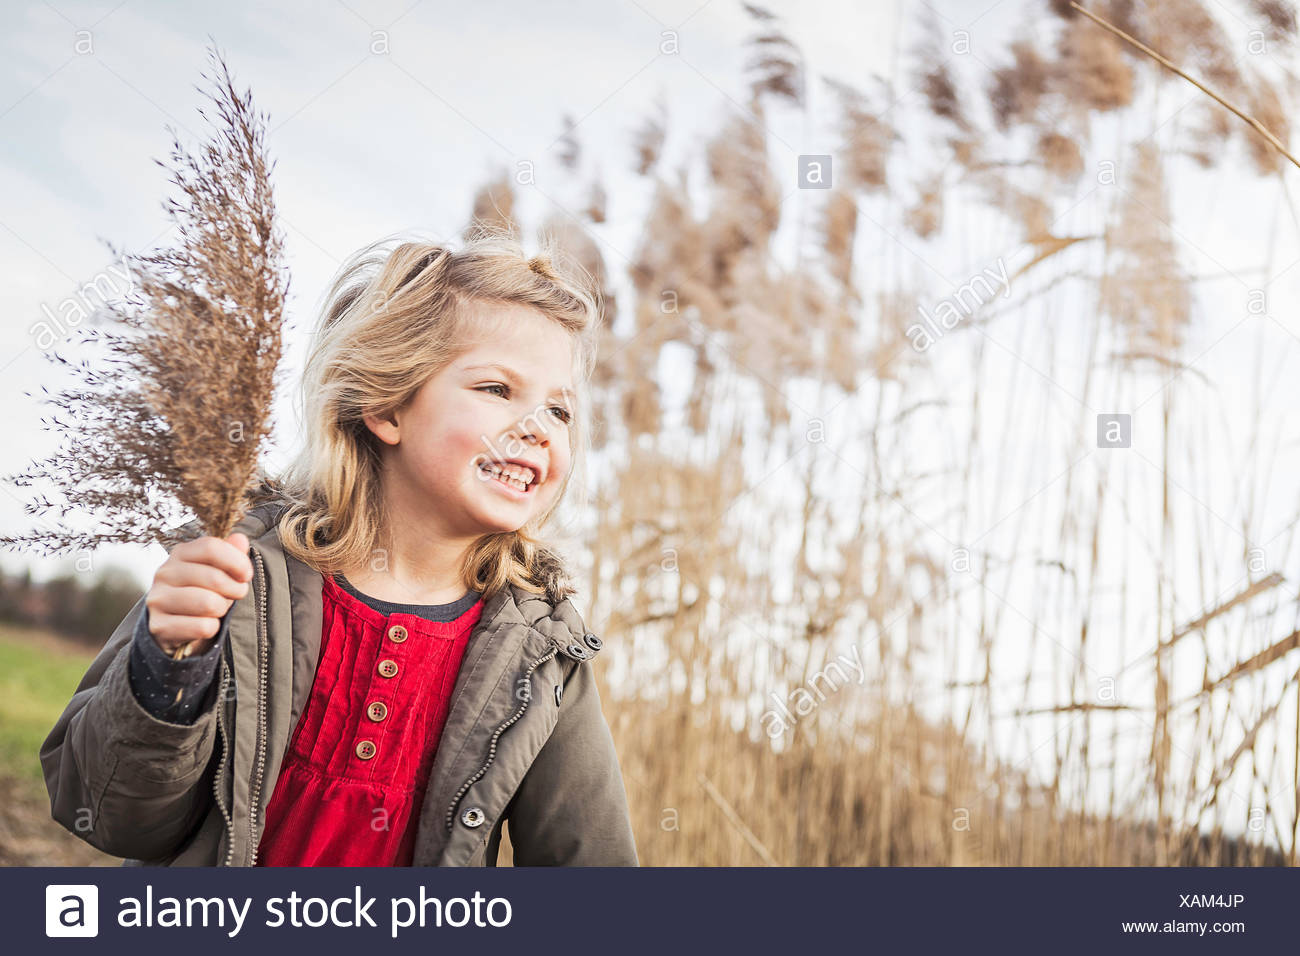 Young girl collecting marsh grasses - Stock Image